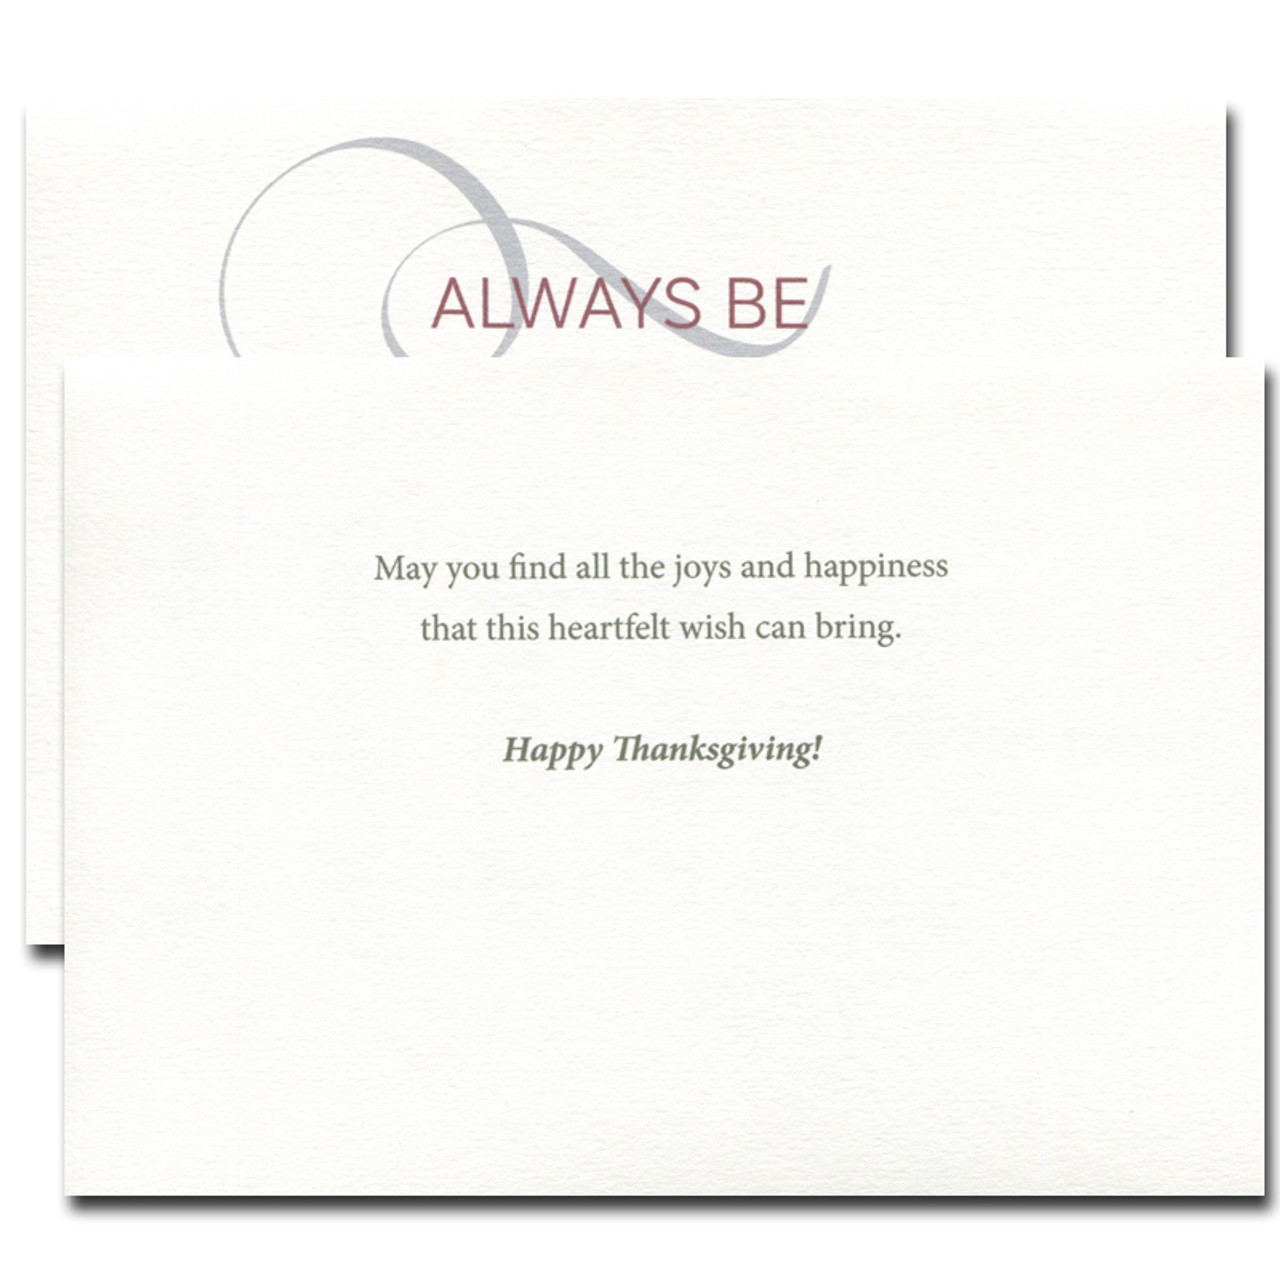 May you find all the joys and happiness that this heartfelt wish can bring. Happy Thanksgiving